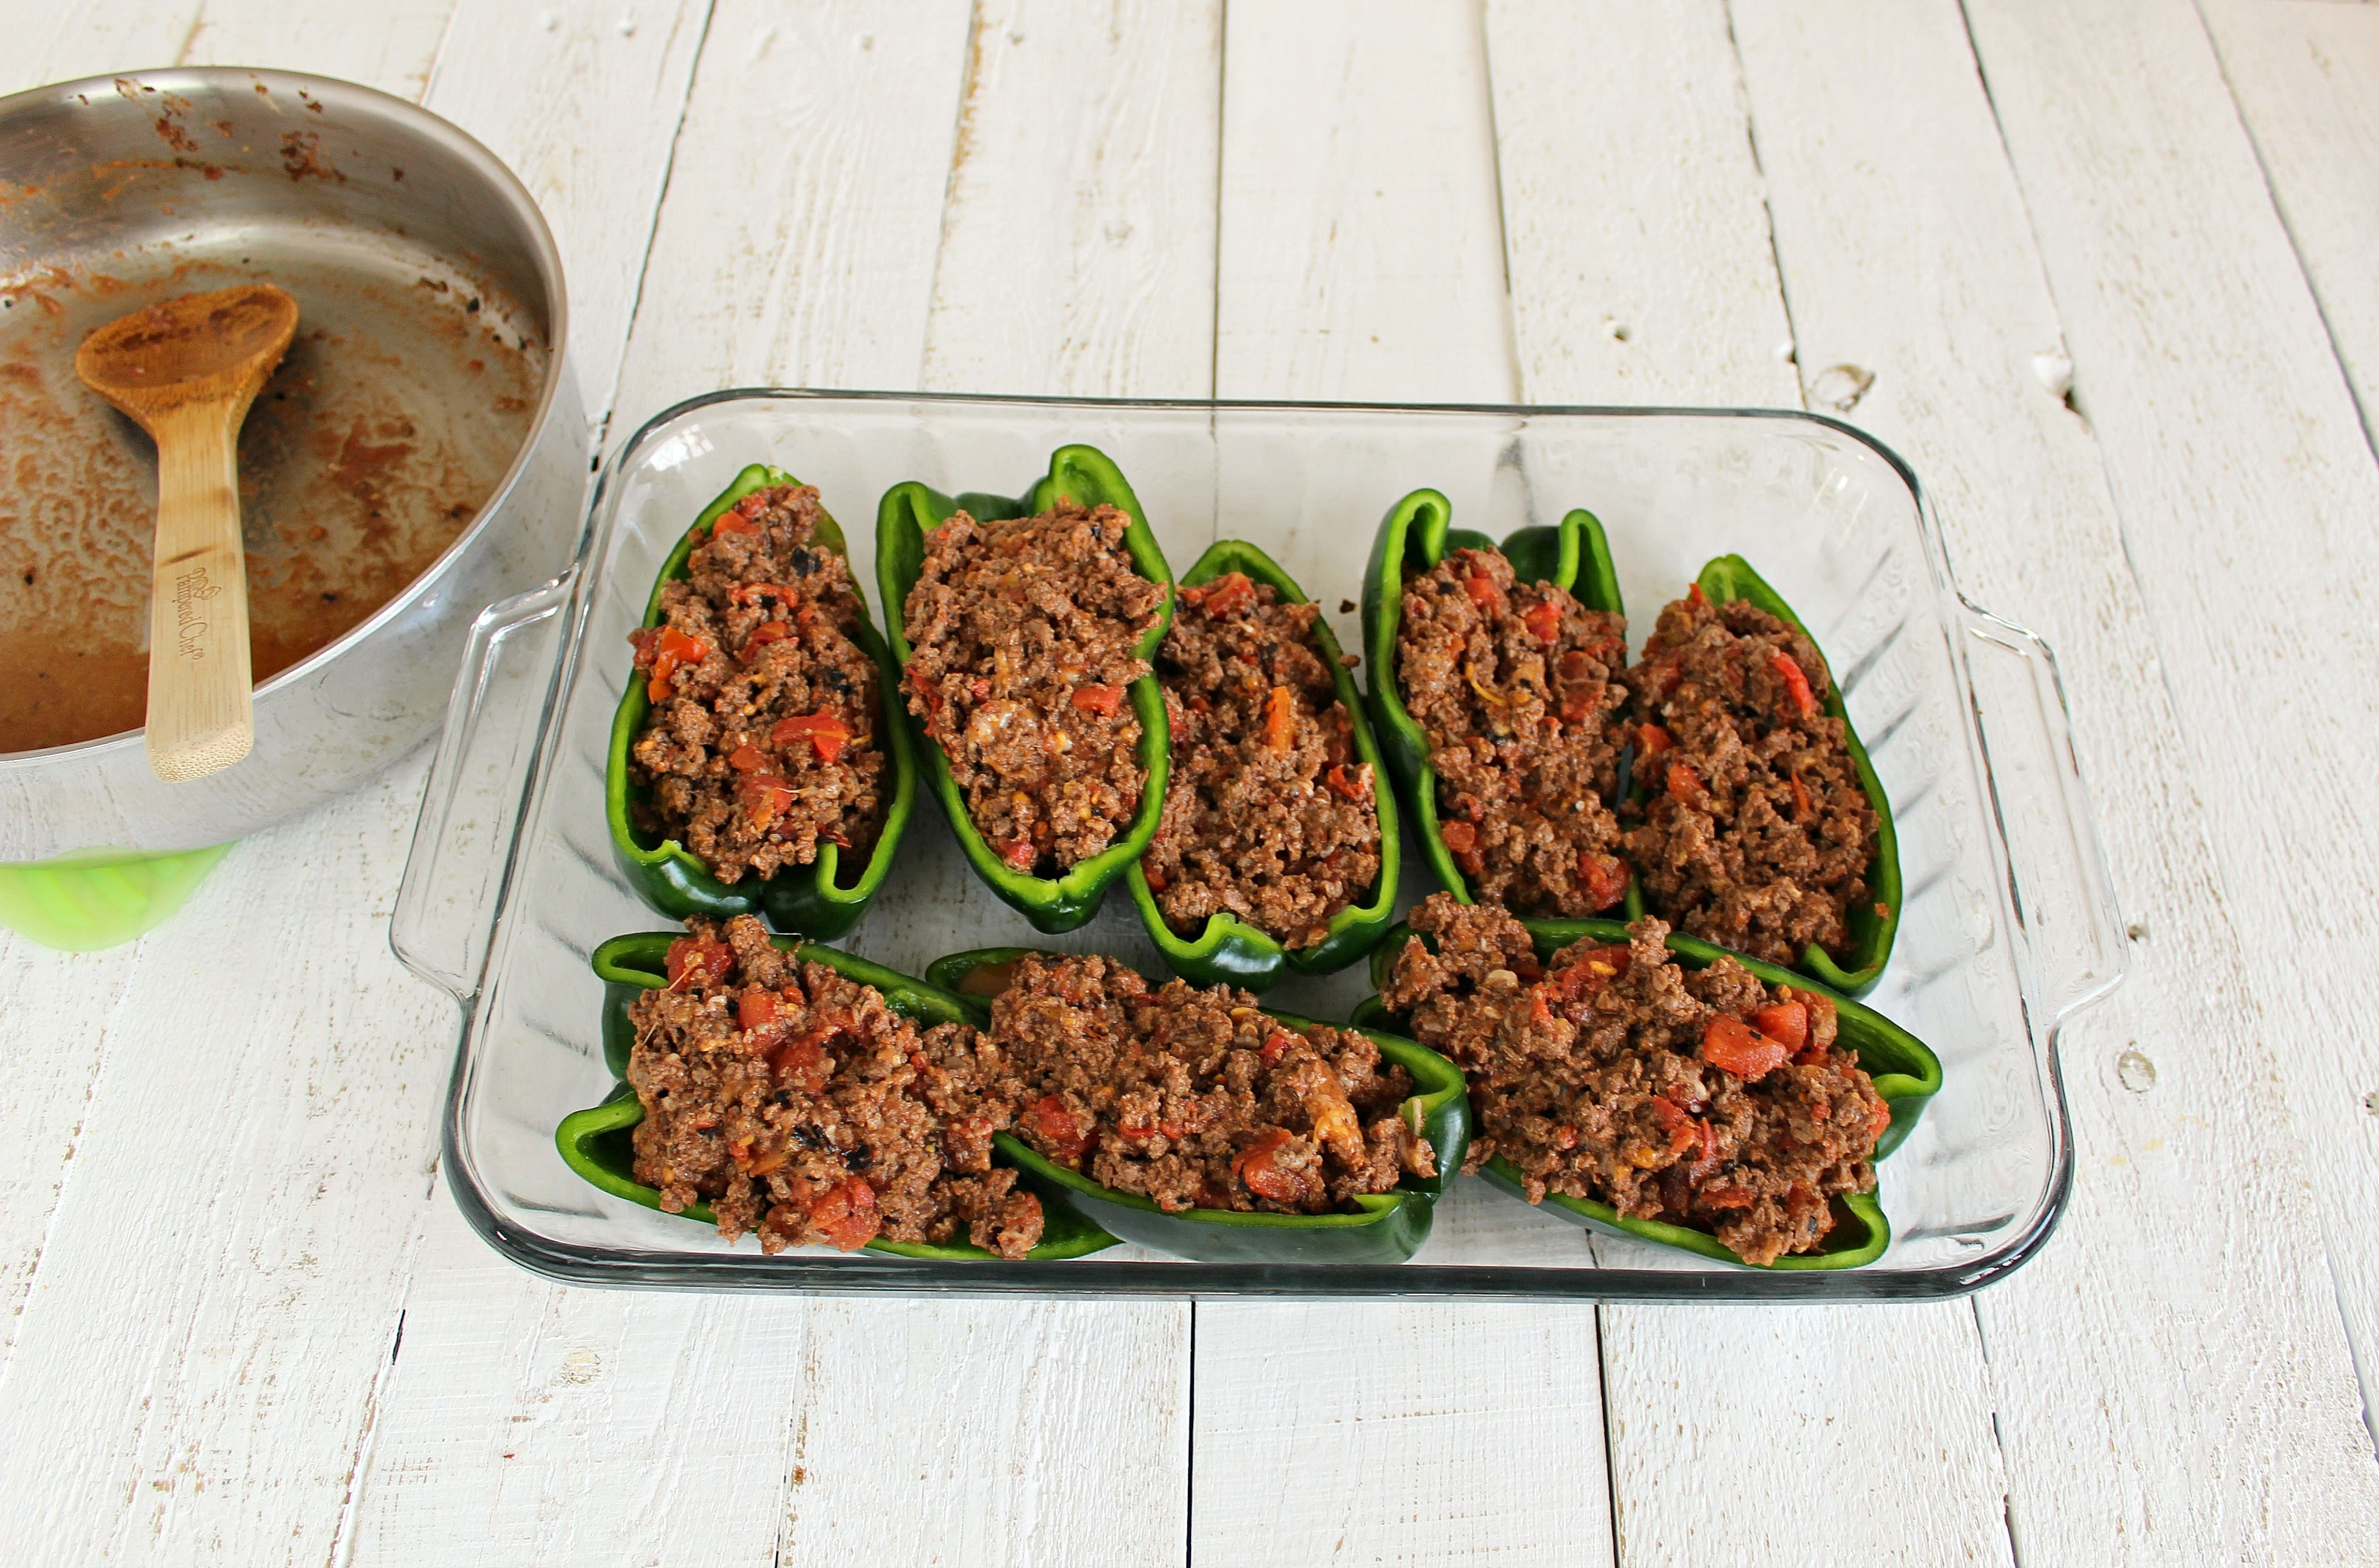 Stuff Poblano peppers with ground beef mixture.